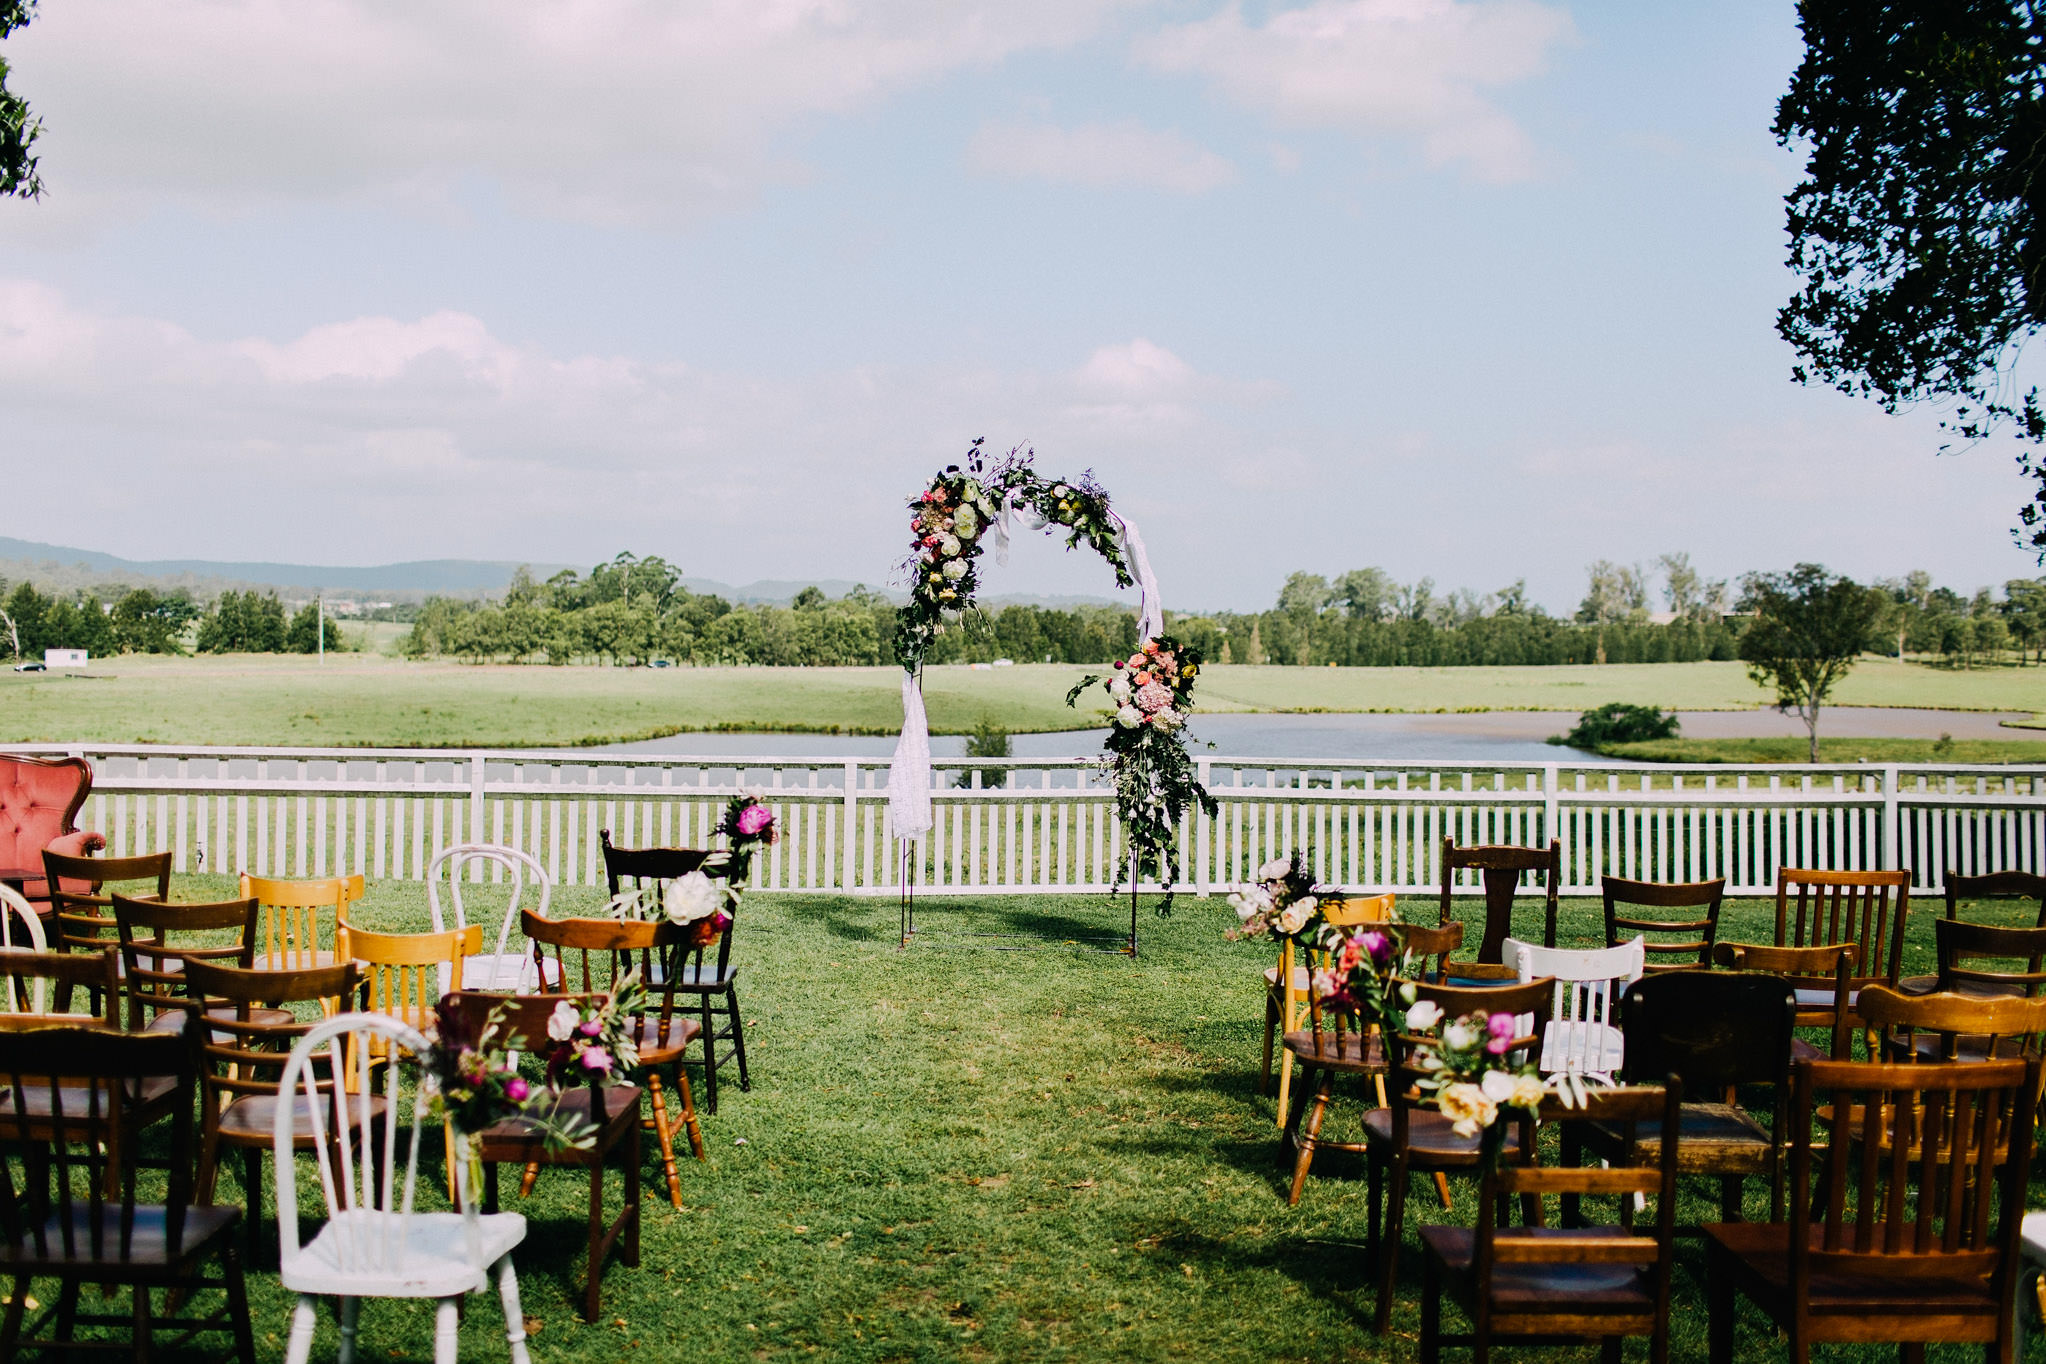 TocalHomestead_WeddingPhotography_LaurenAnnePhotography-1031.jpg